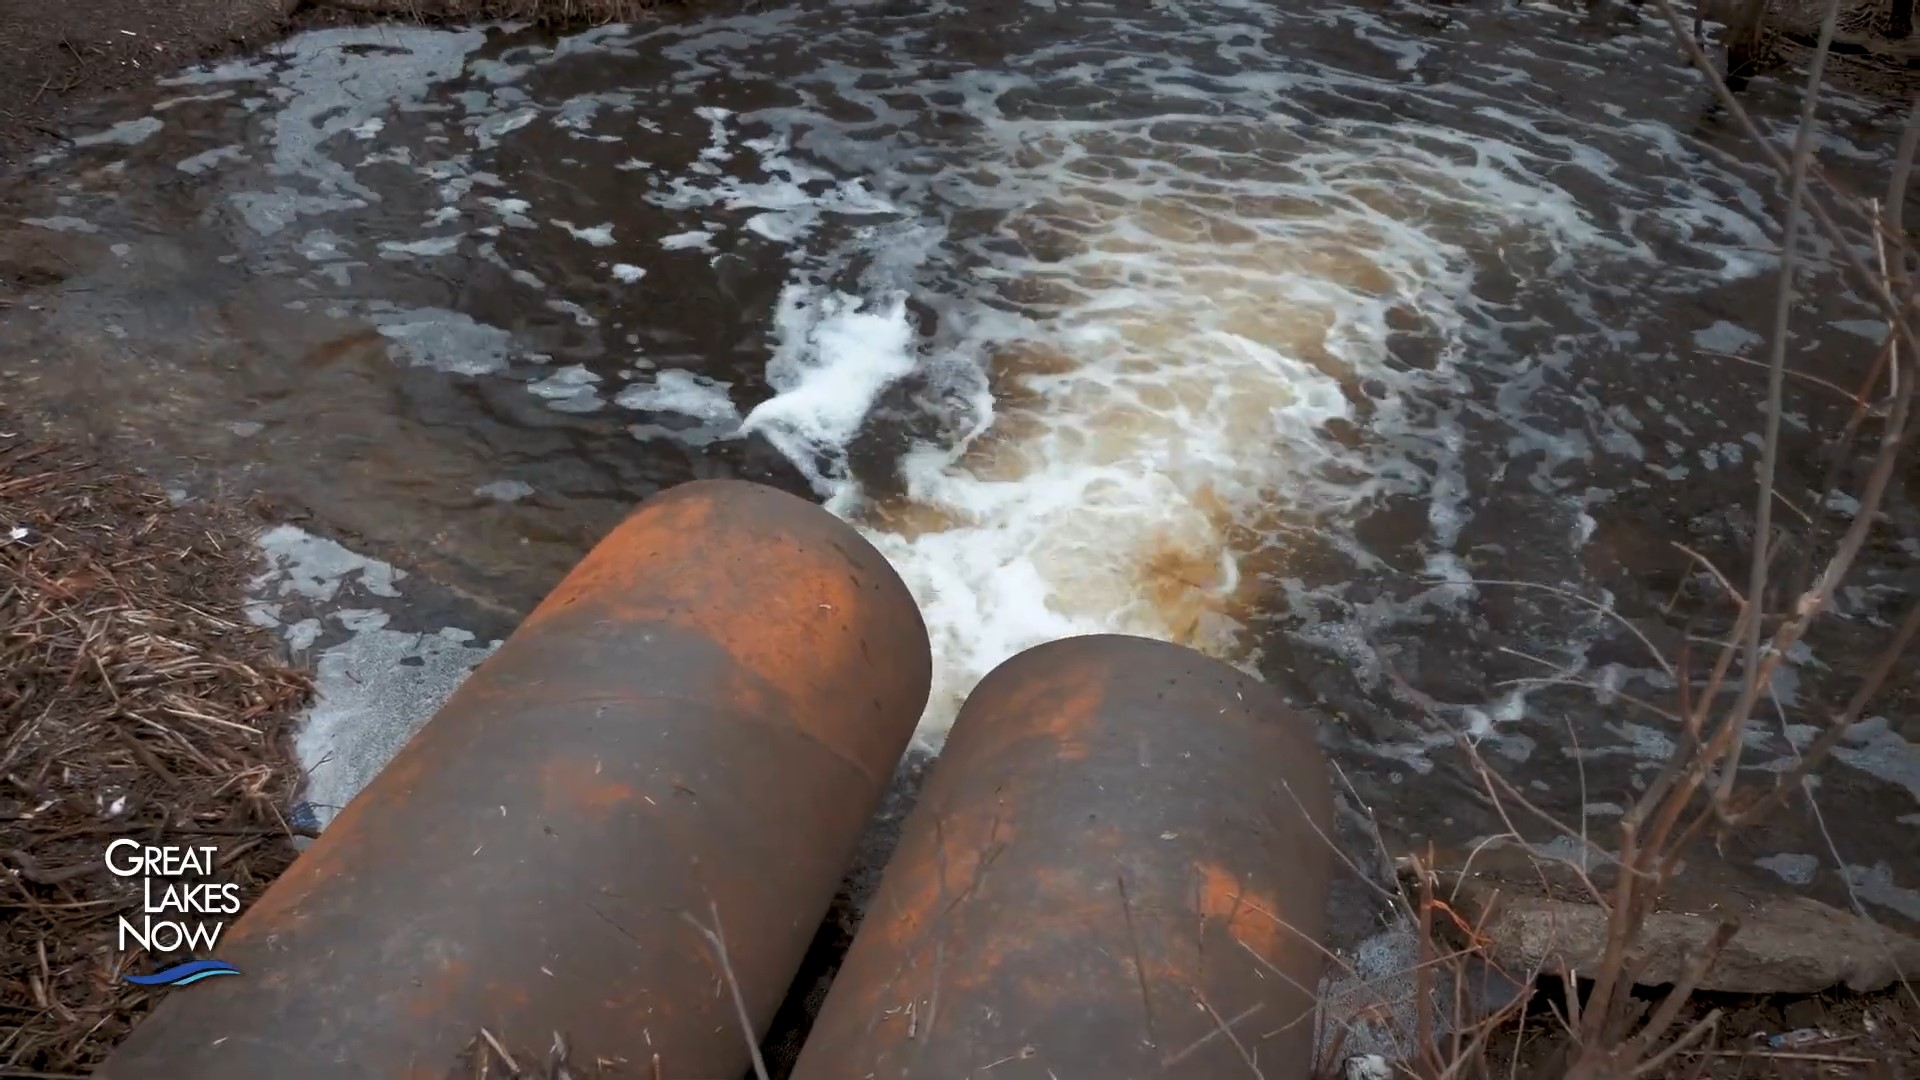 Sewer pipes releasing into a waterway